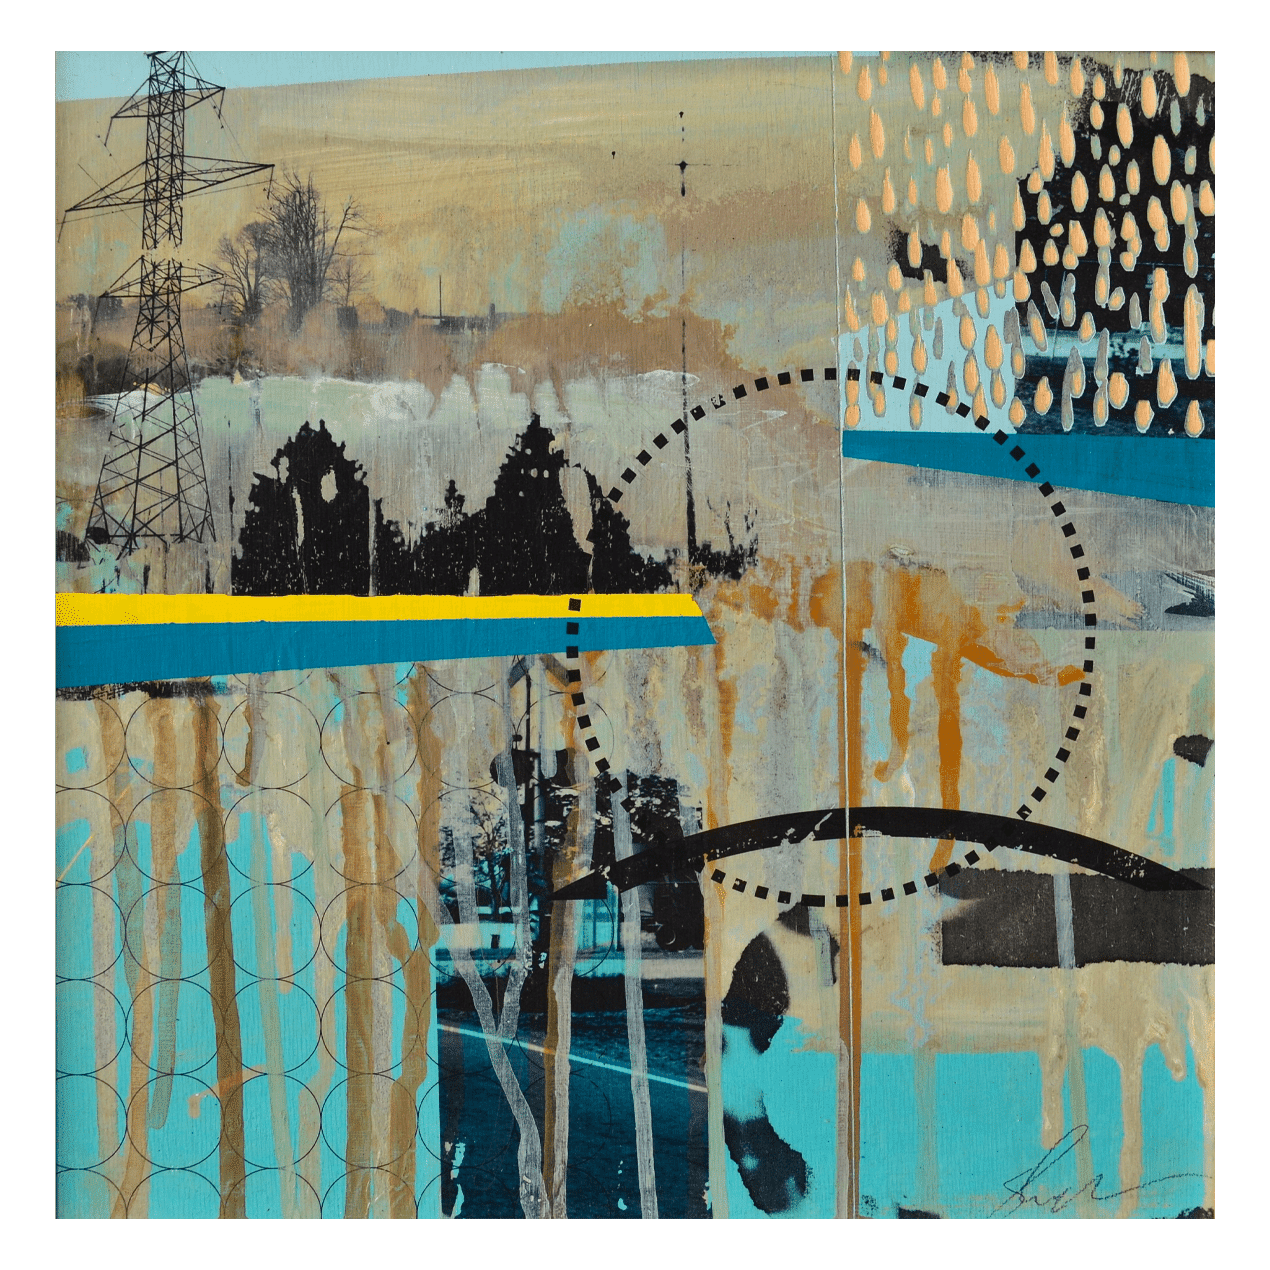 Power Lines 12 x 12 Mixed Media on Panel (Abstract)